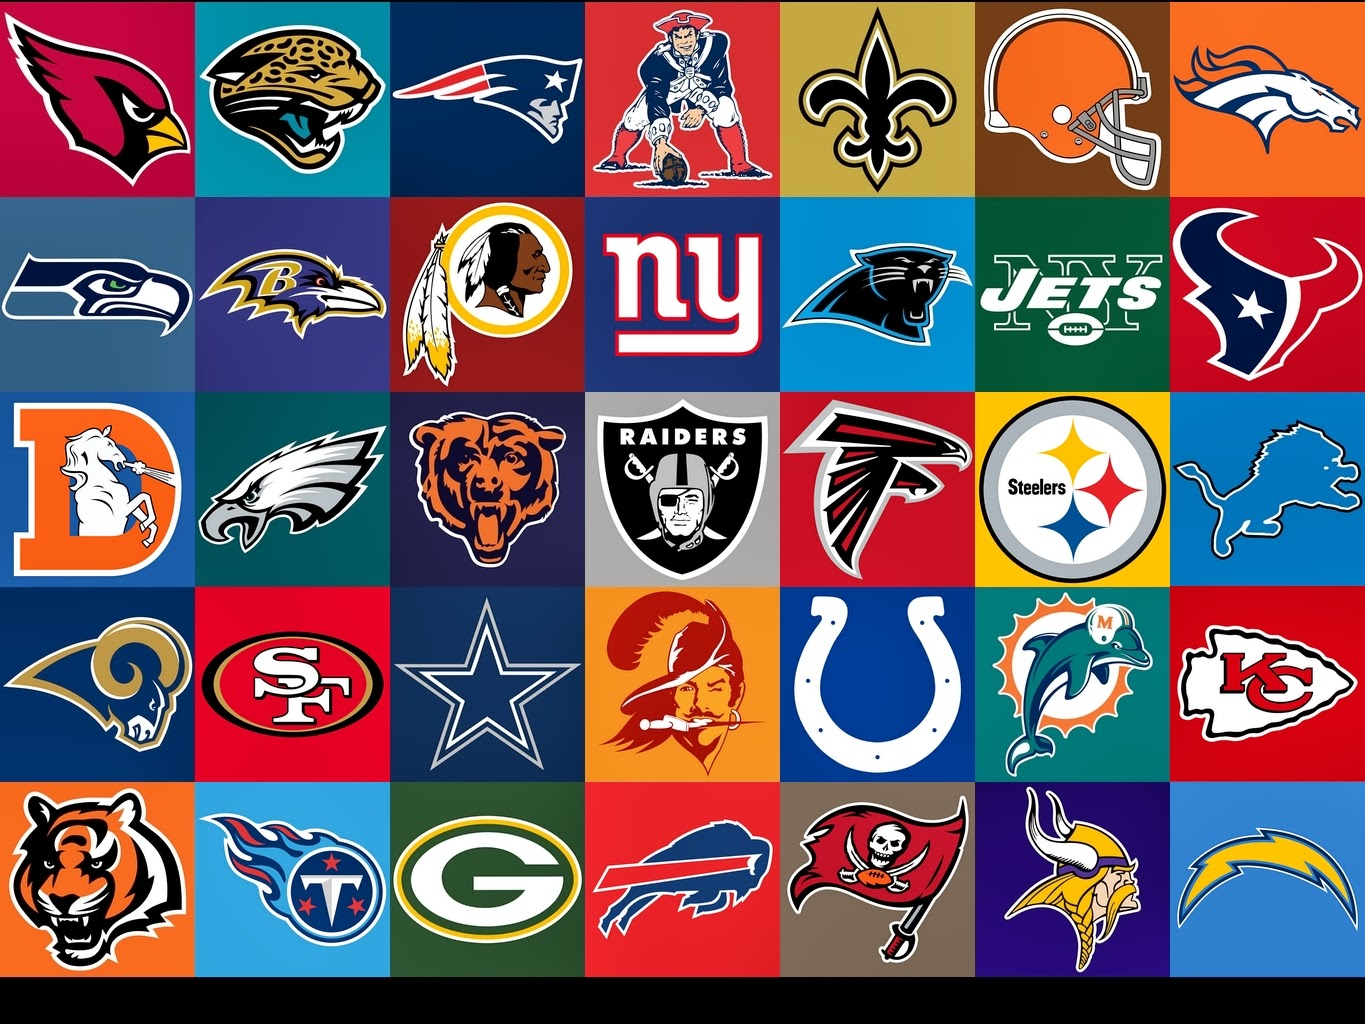 Free download Nfl Team Logos 2013 Nfl logo superbowl.